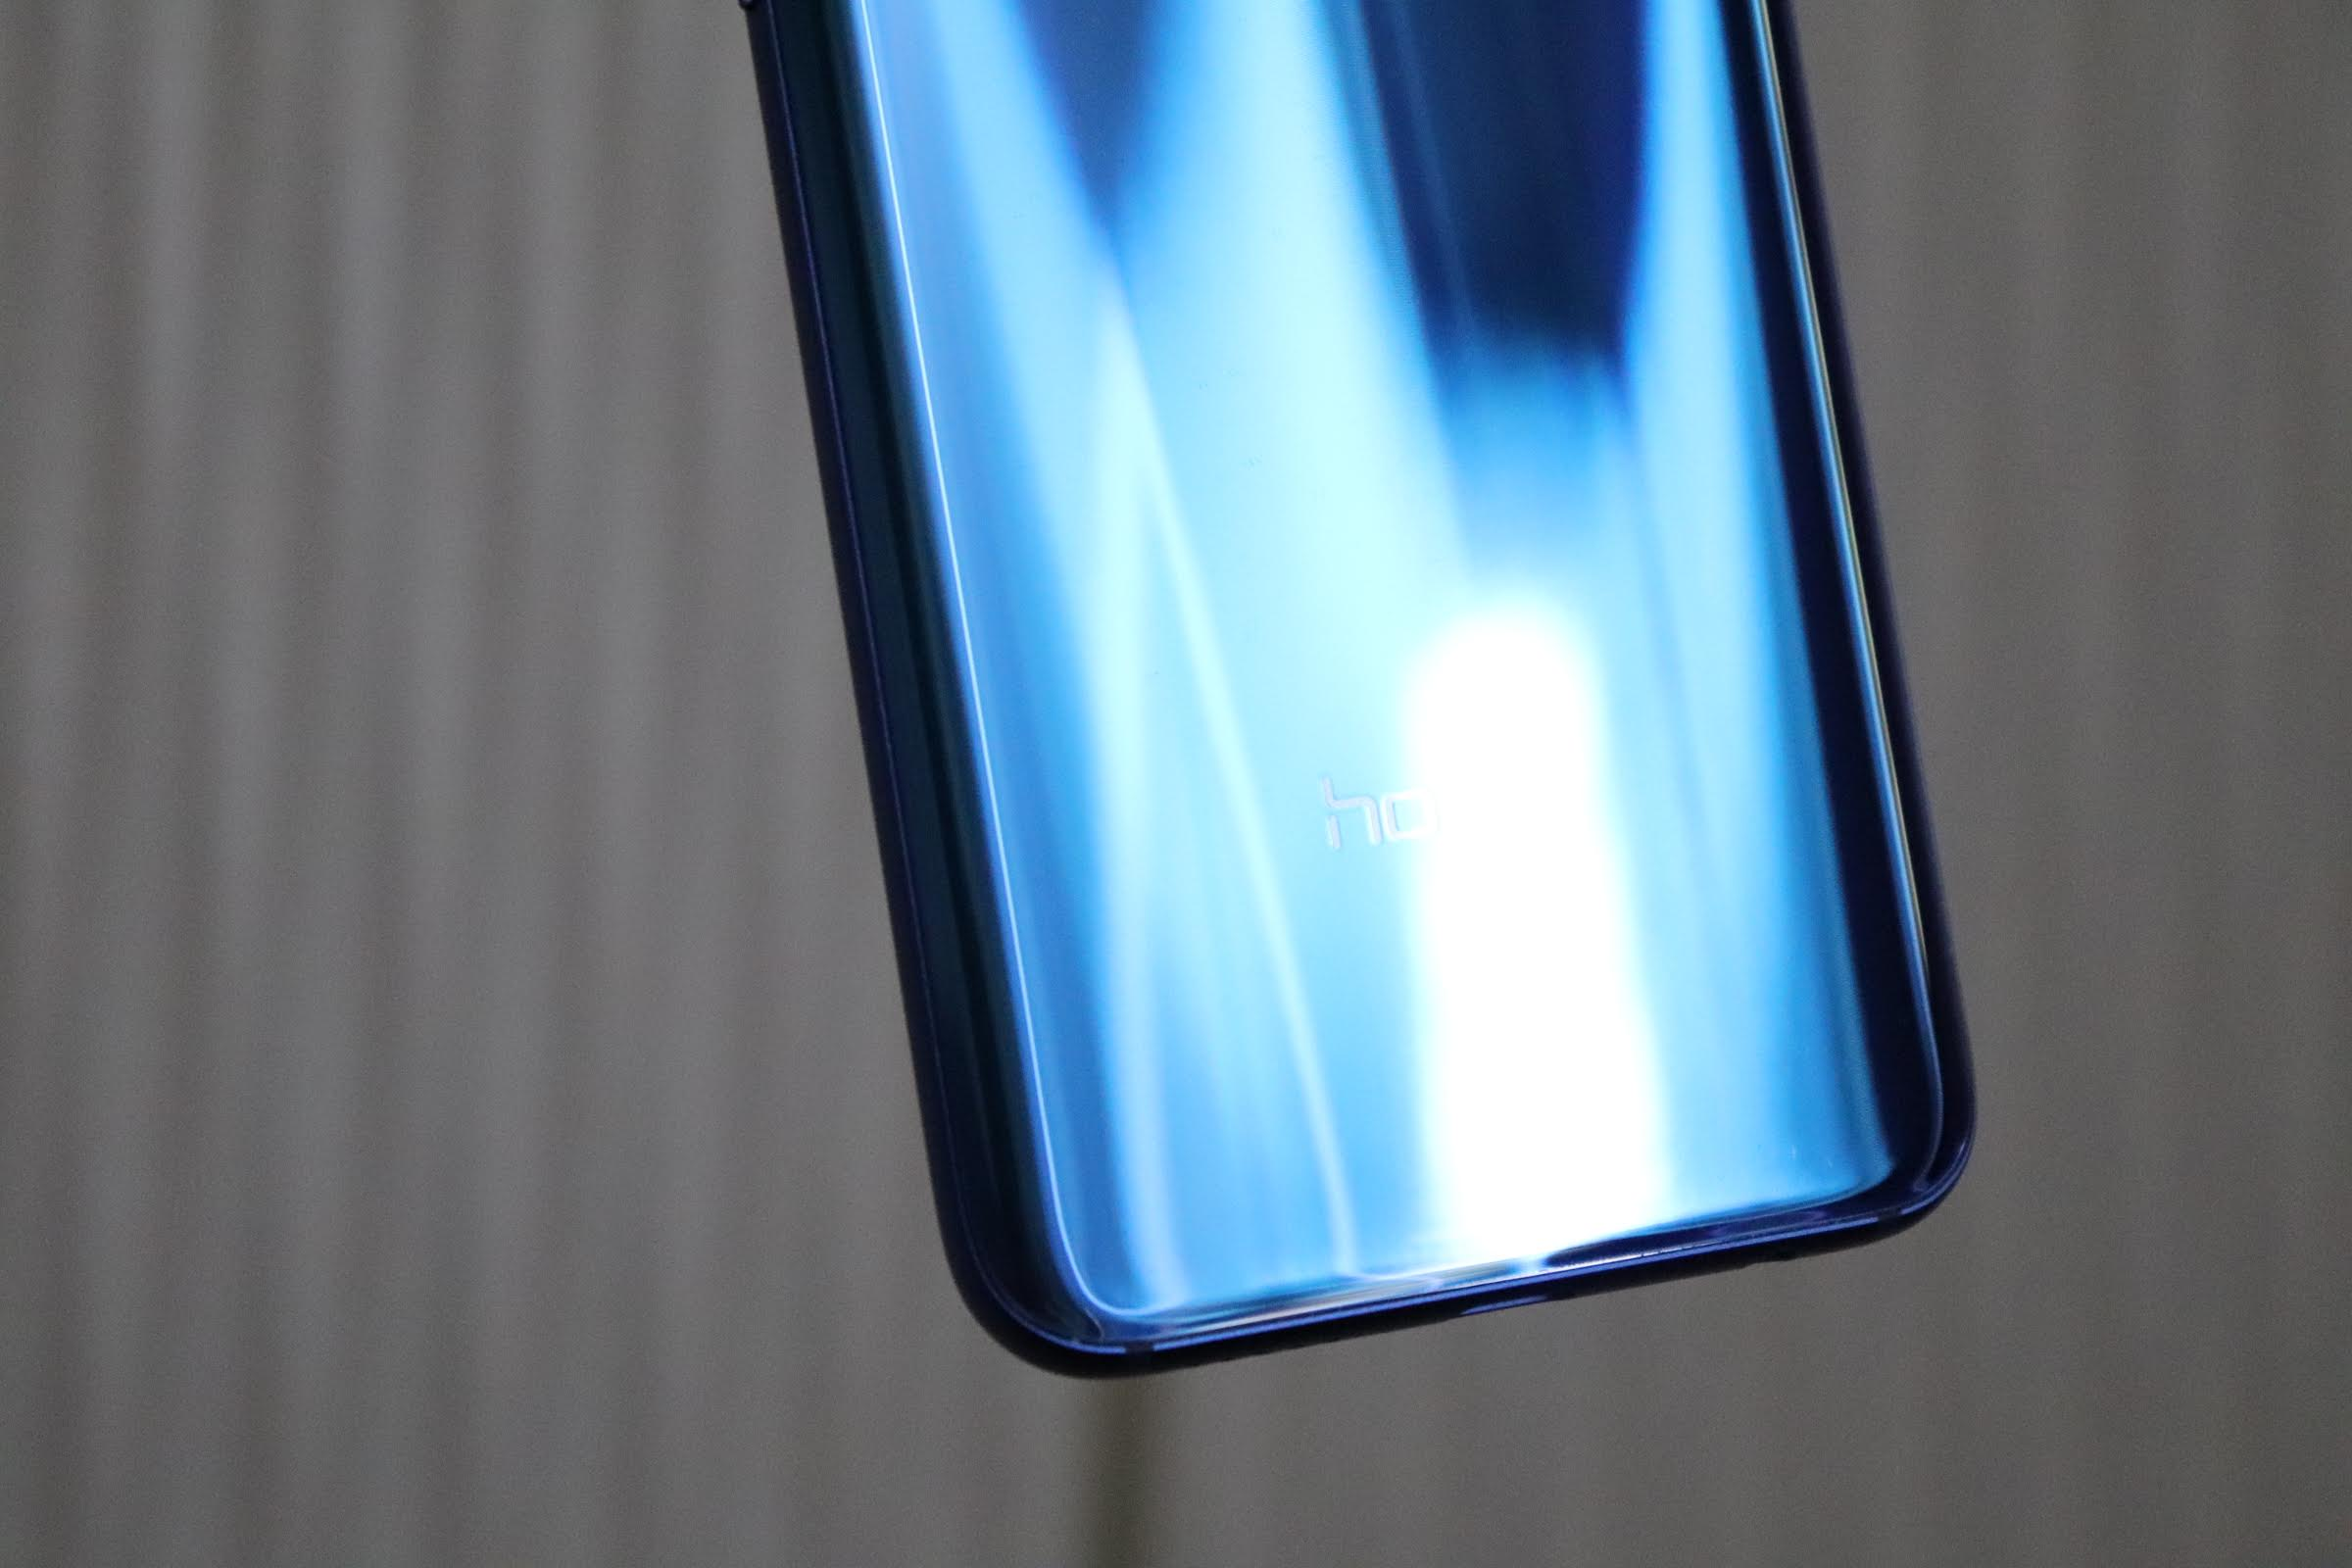 quick Honor 10 firmware guide